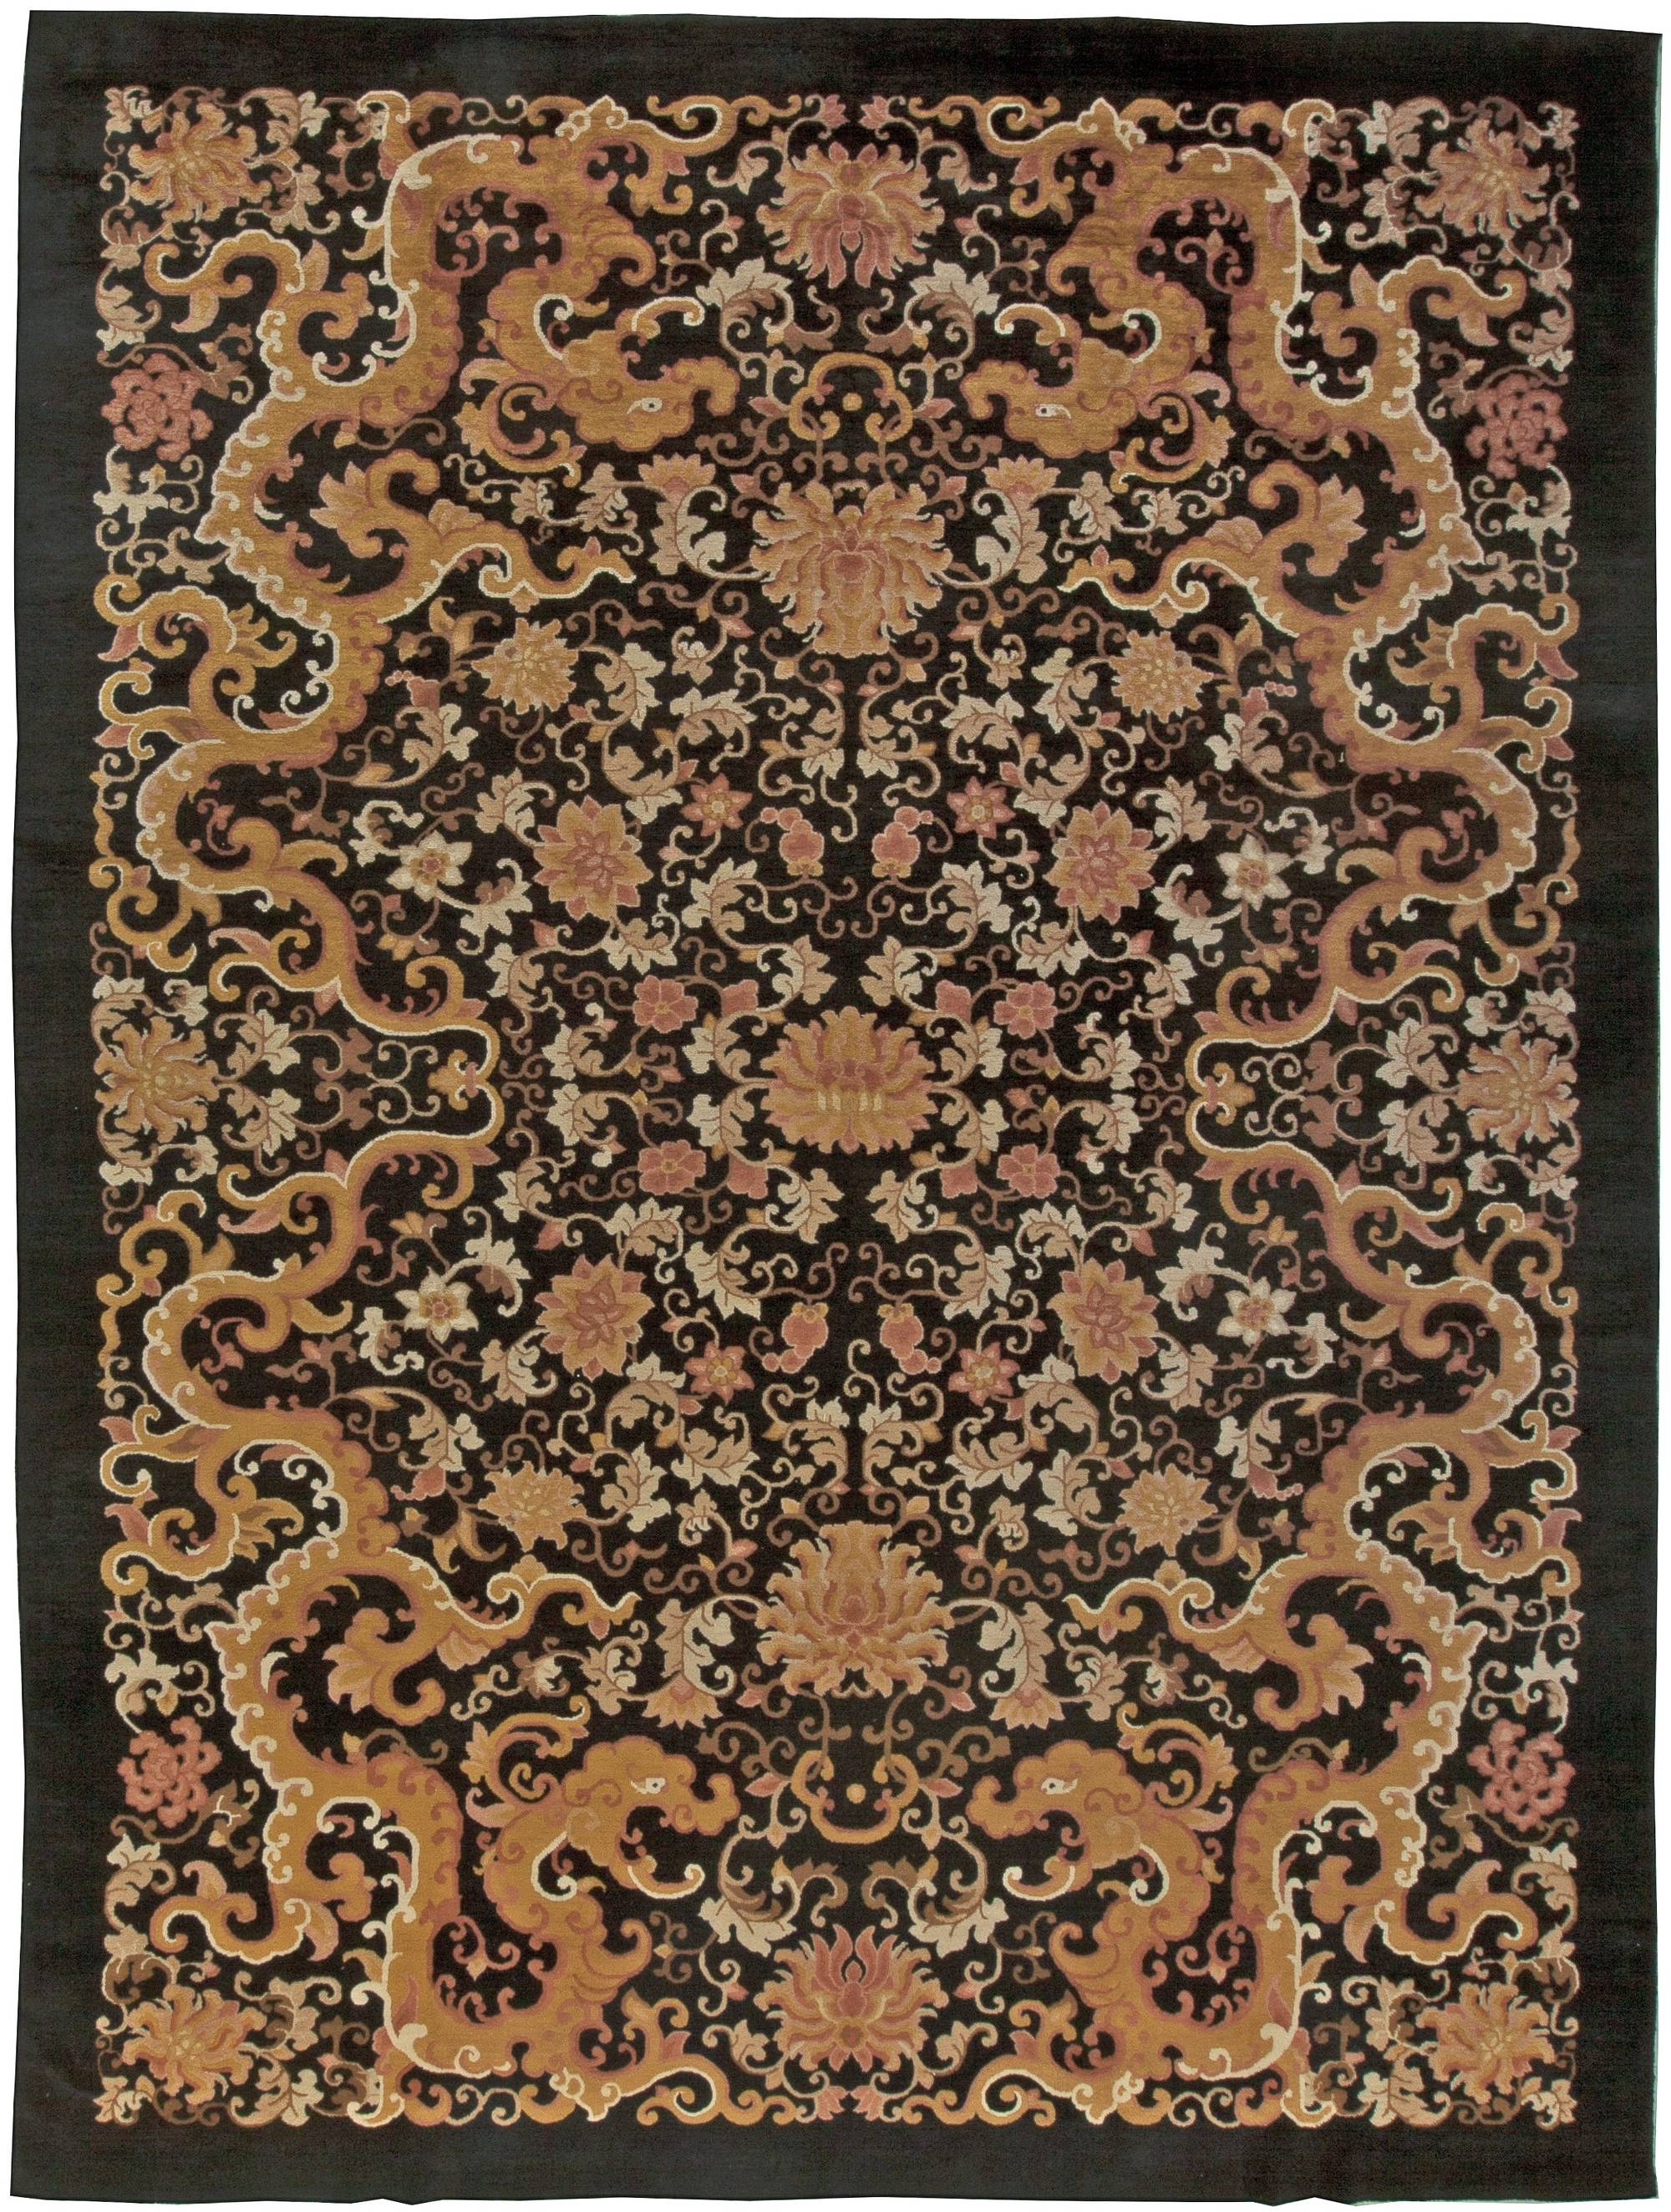 chinese vintage rug bb5968doris leslie blau Antique Rugs